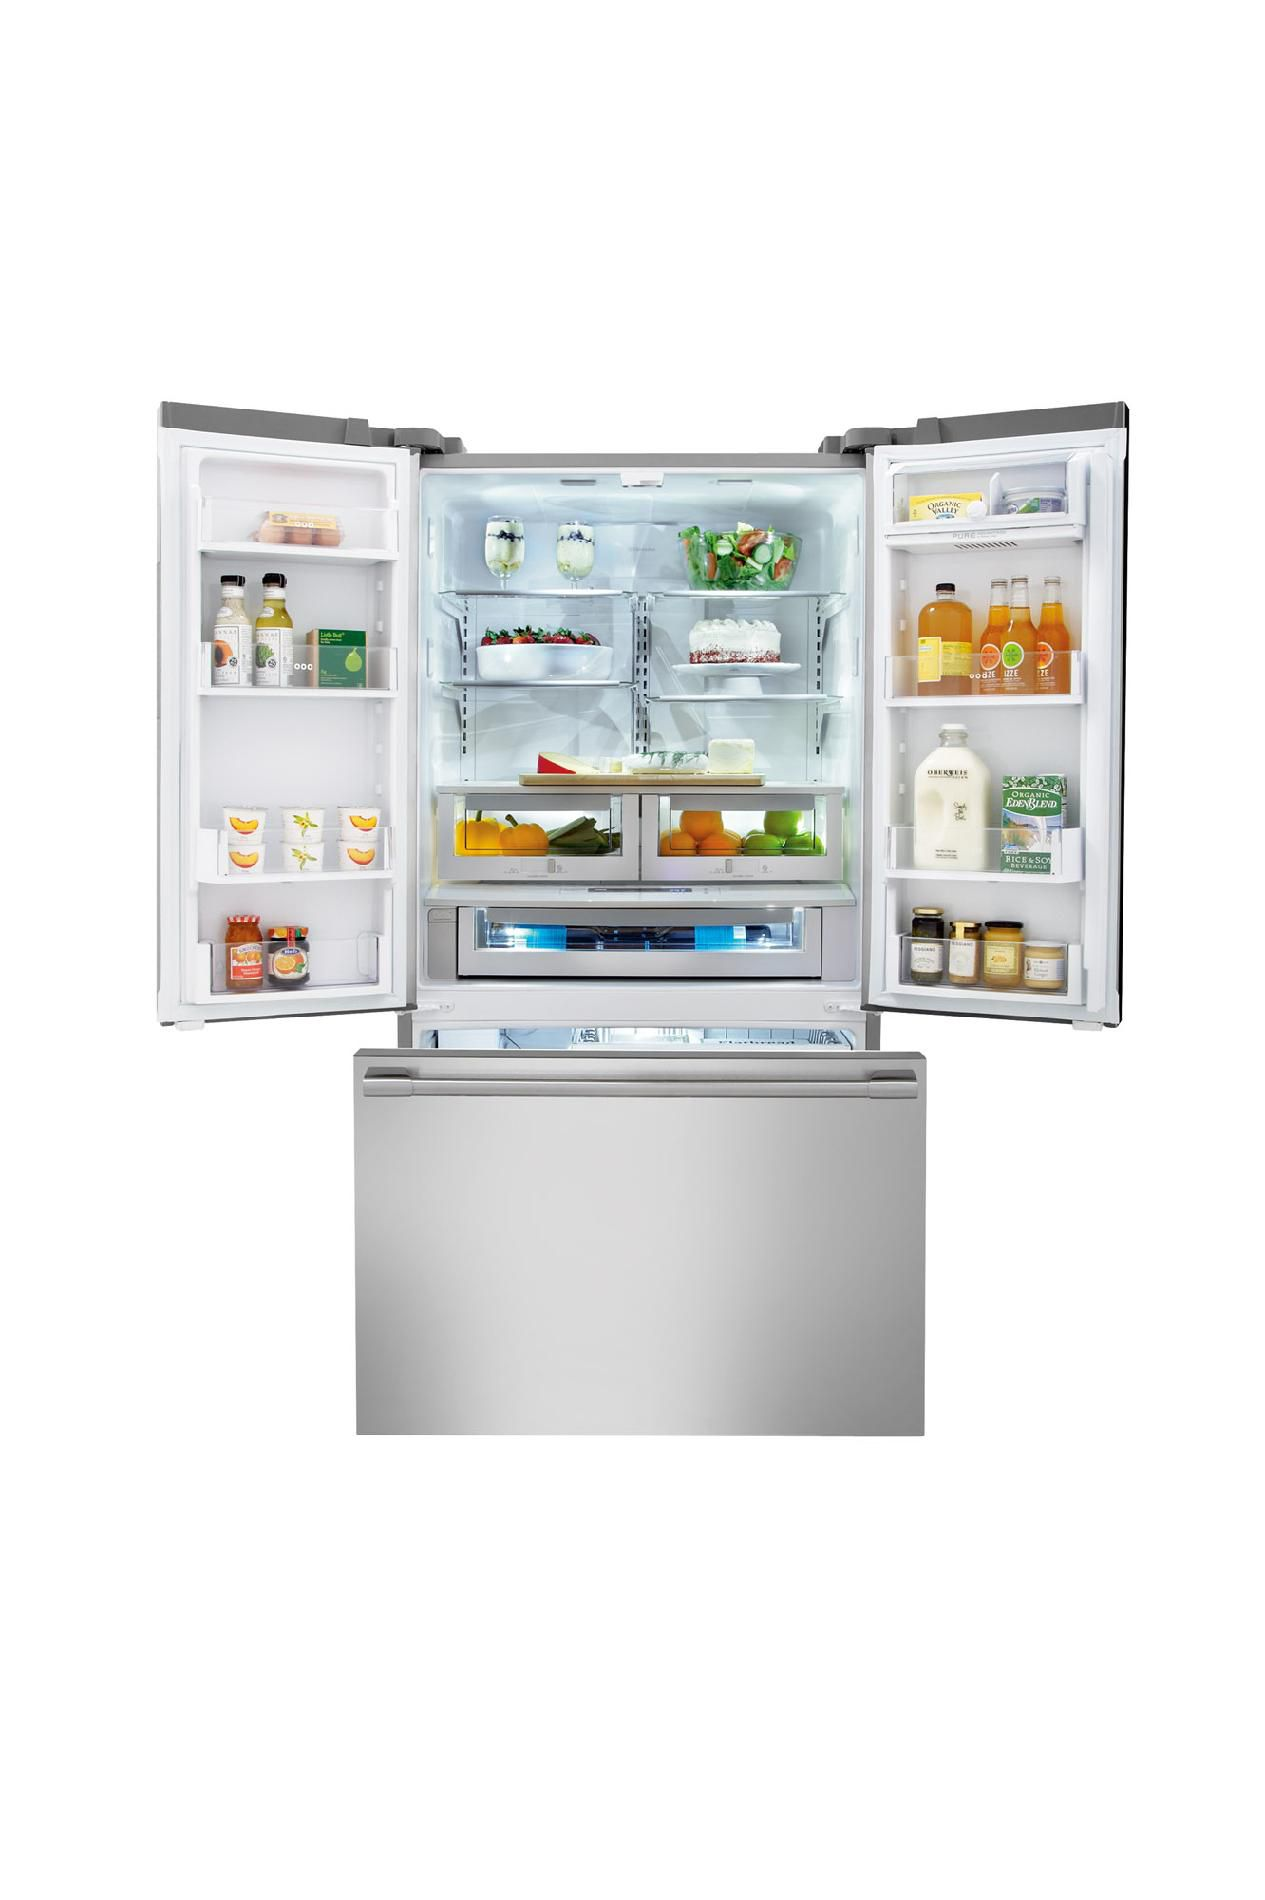 Electrolux ICON 23 cu. ft. Counter-depth French Door Refrigerator  - Stainless Steel